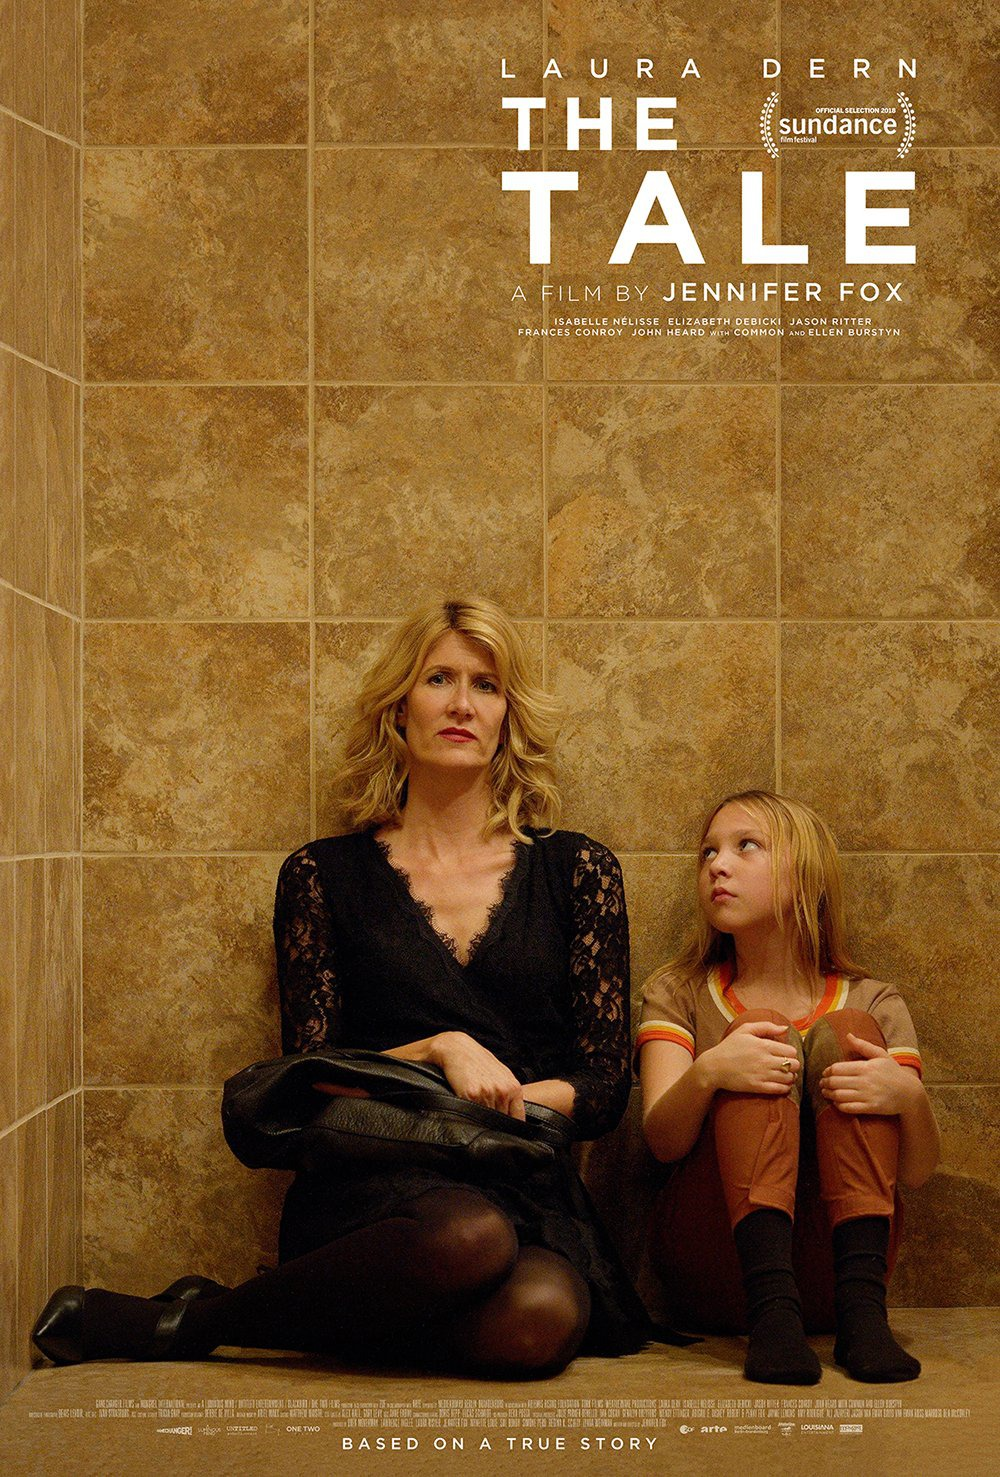 The Tale Film